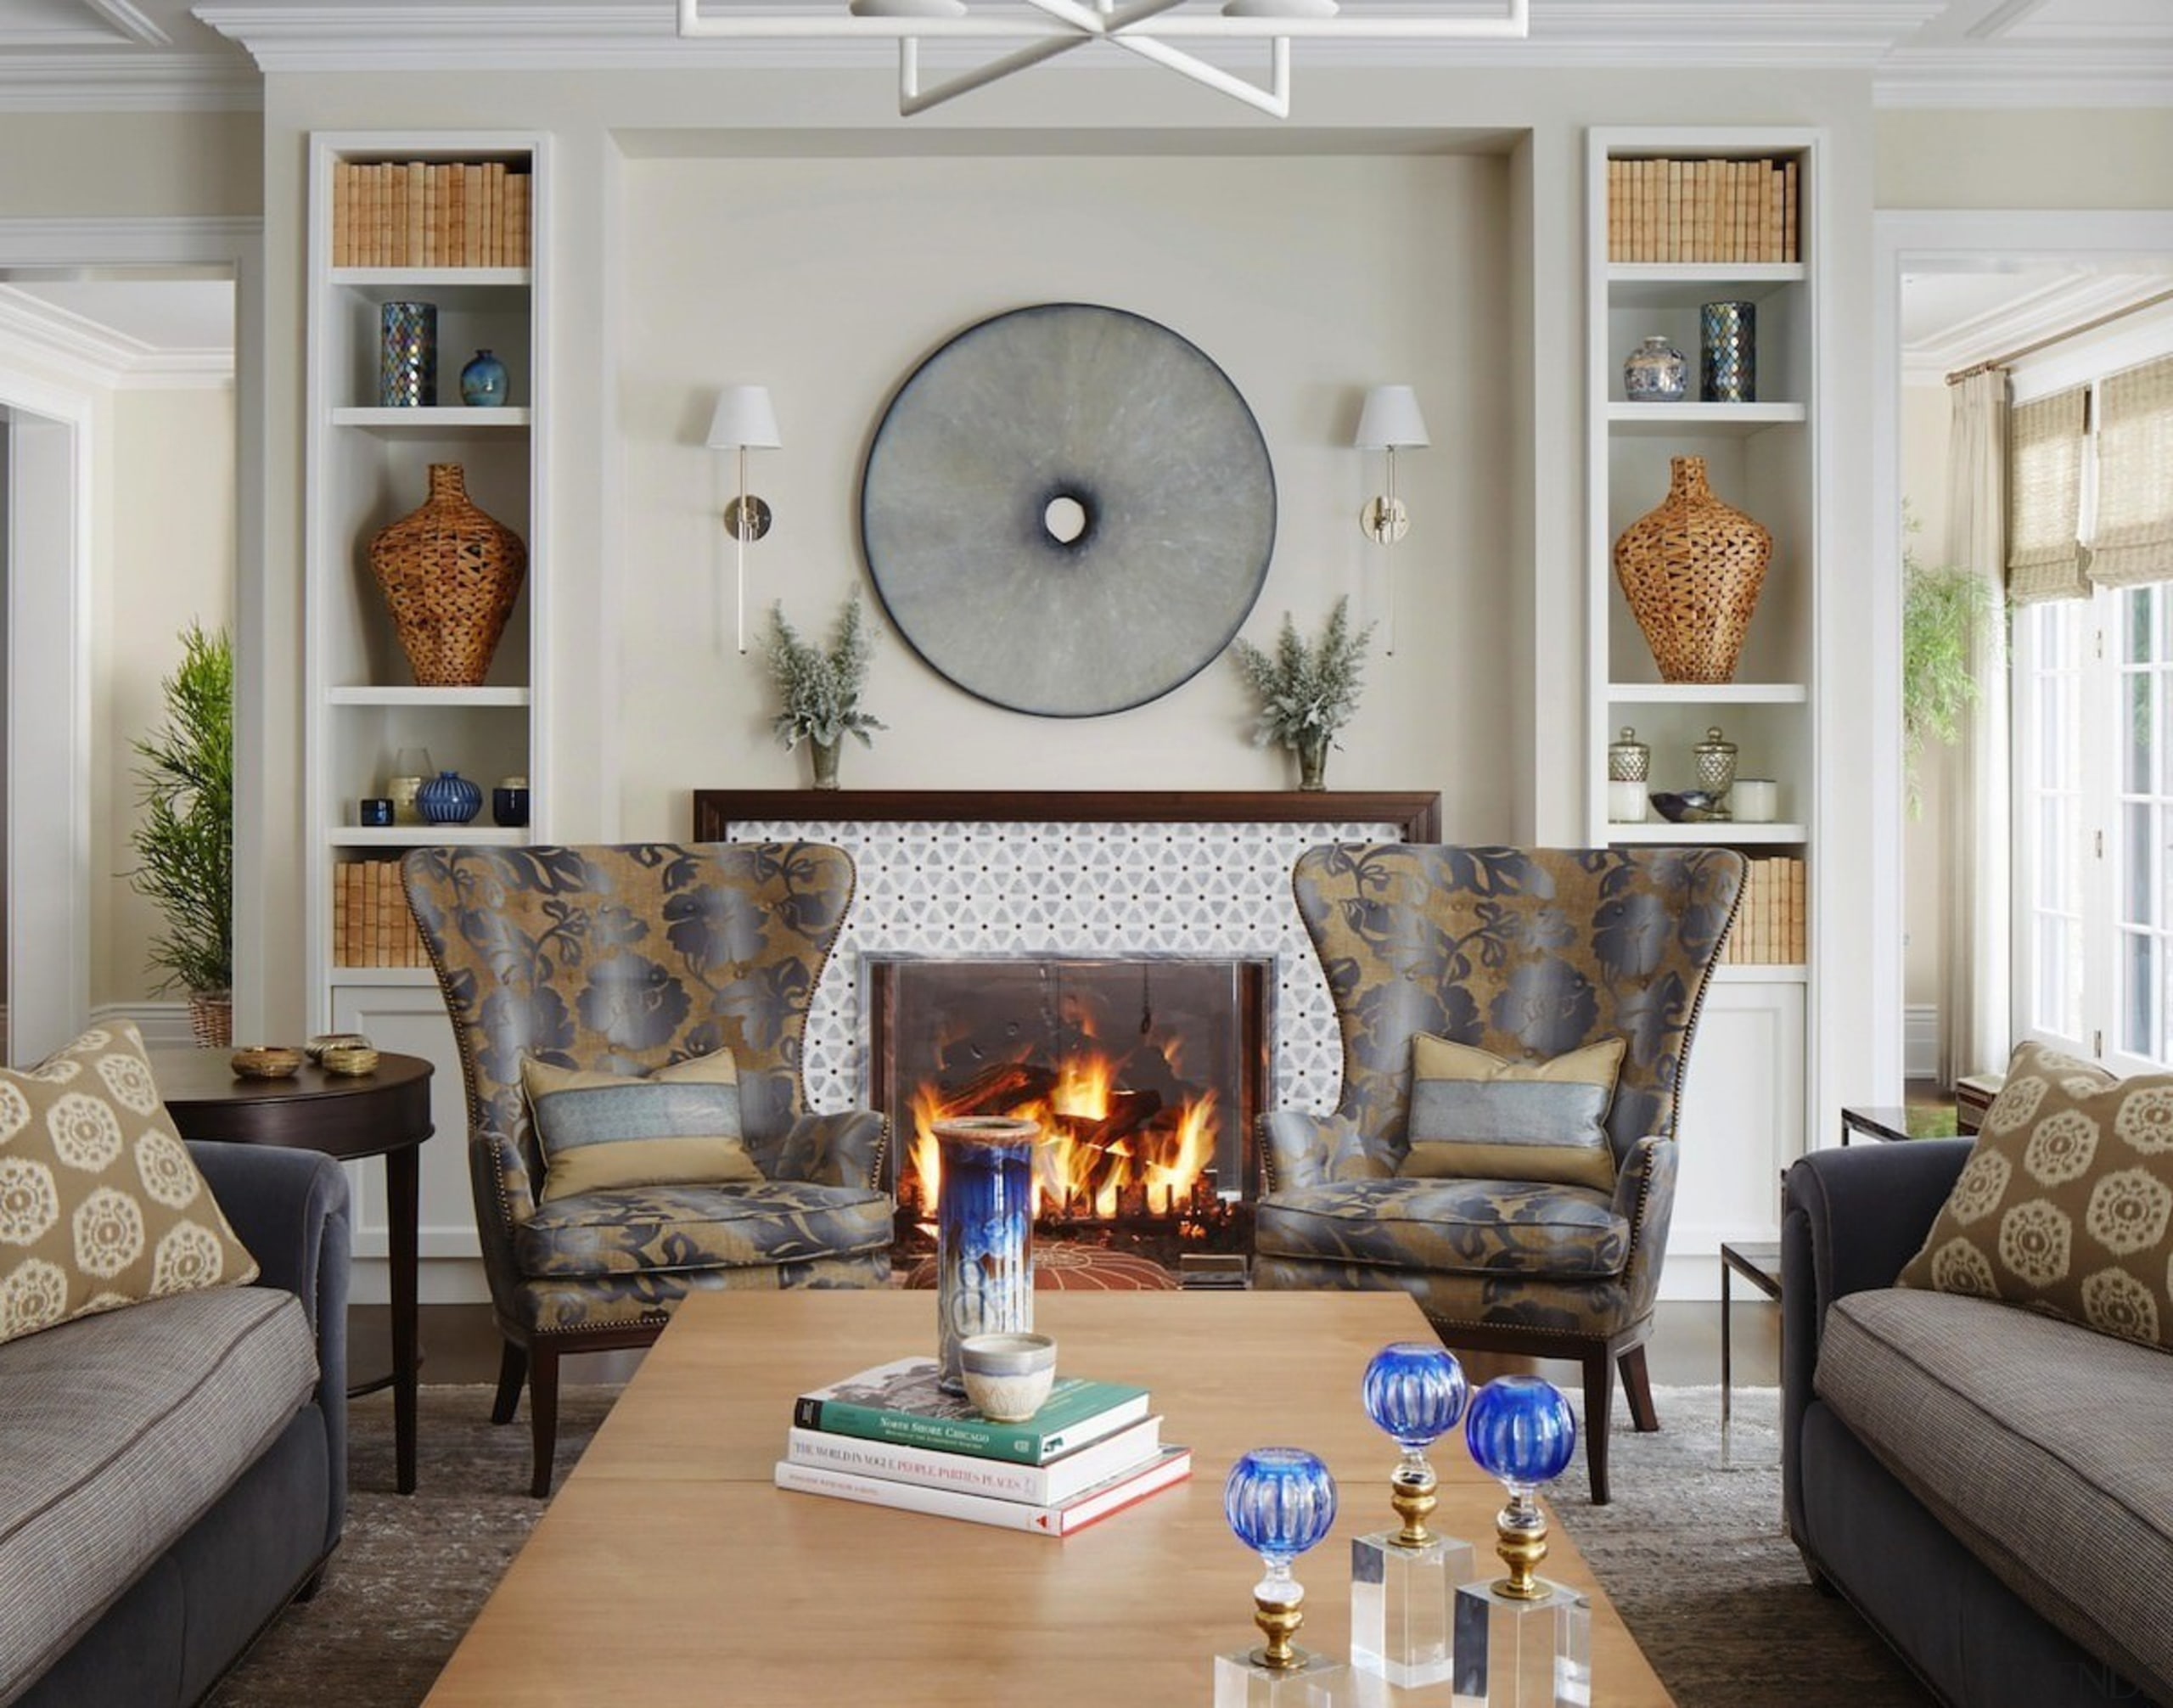 Little can beat a fireplace in winter - couch, furniture, hearth, home, interior design, living room, loveseat, room, wall, gray